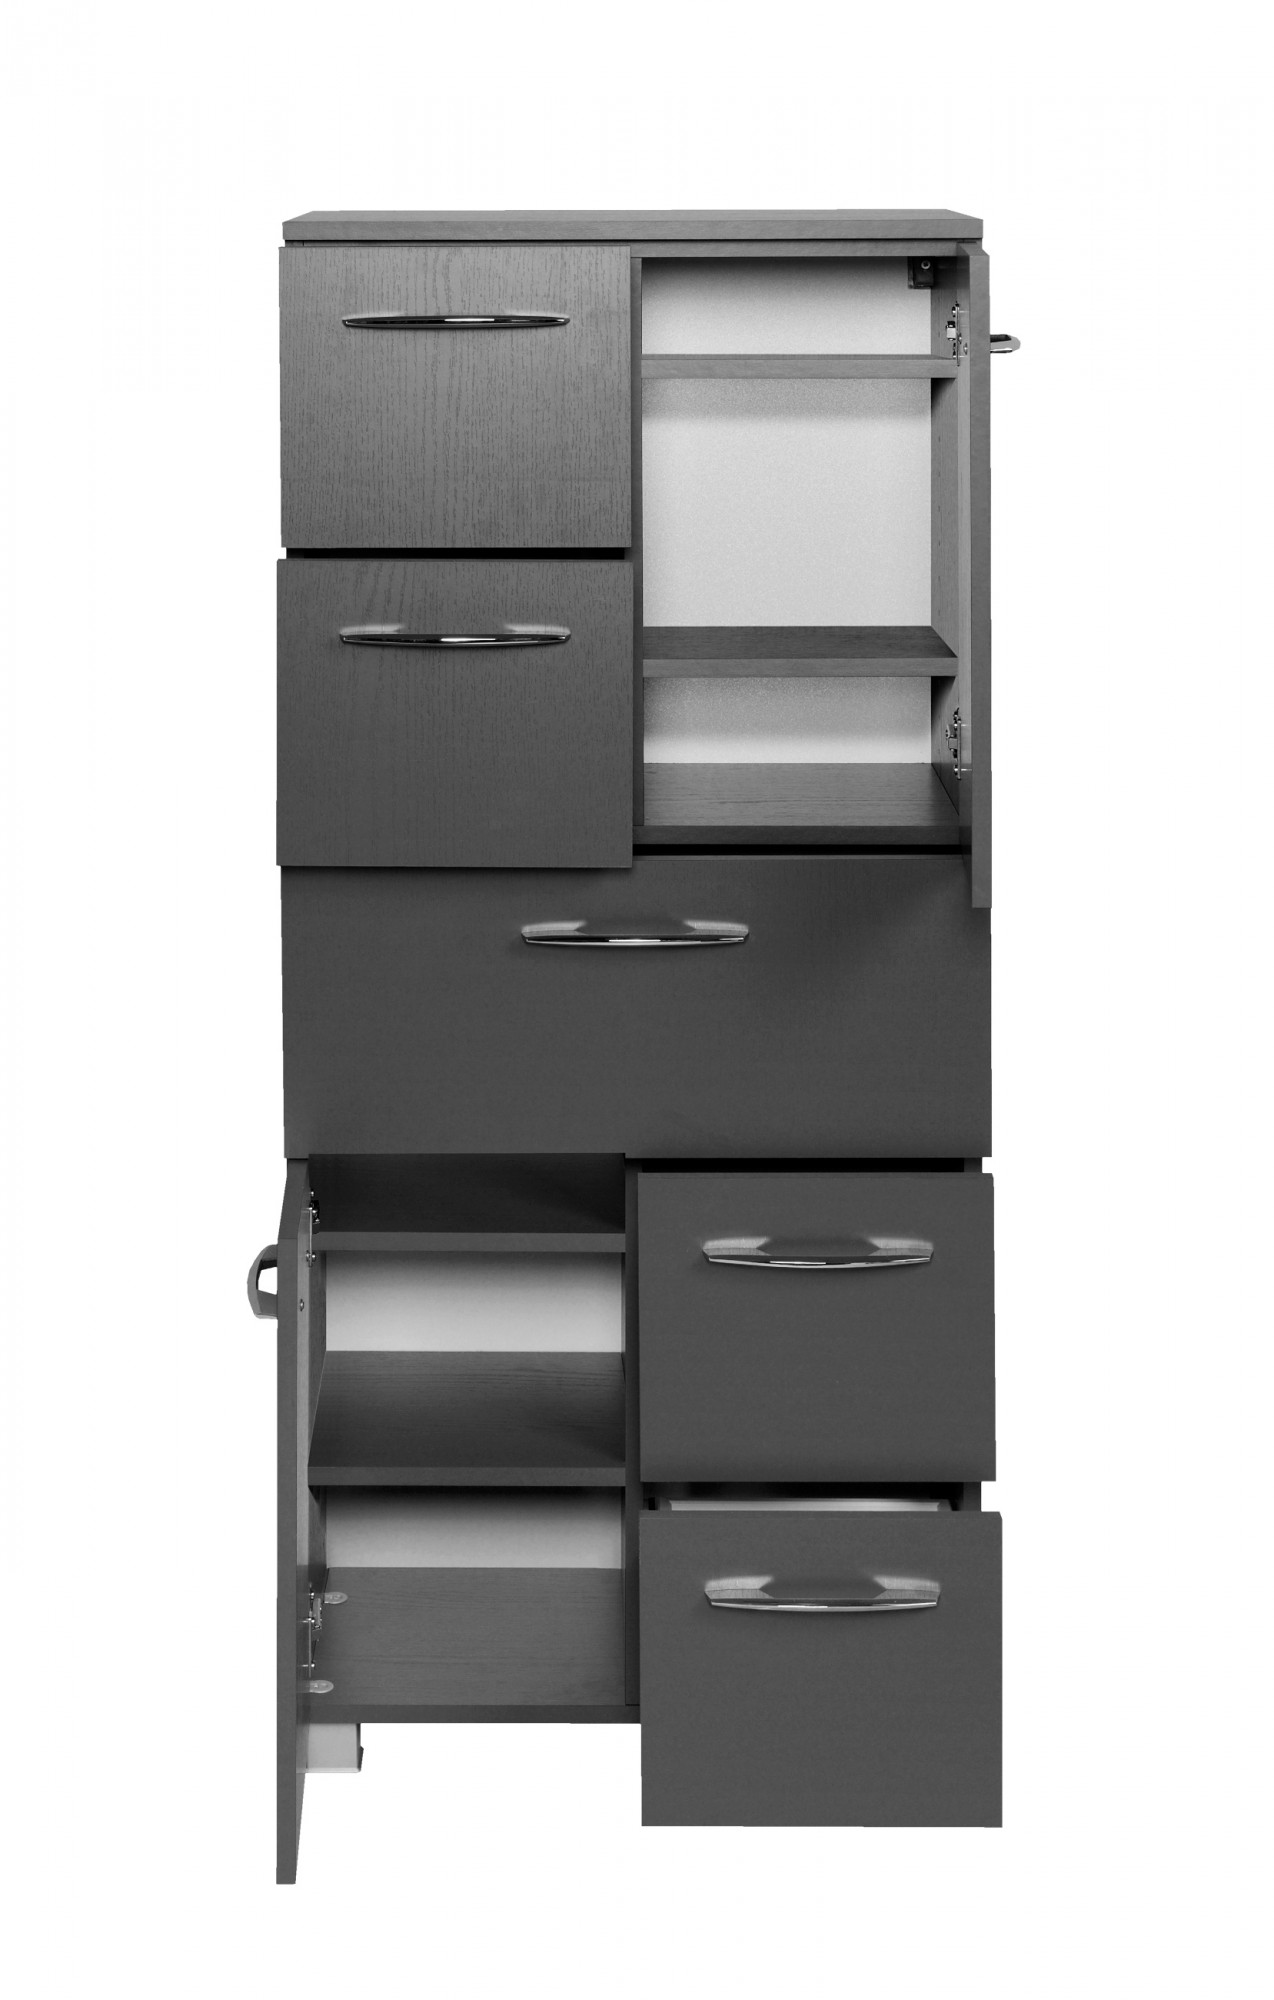 Badezimmer midischrank portofino highboard badm bel for Badezimmer highboard